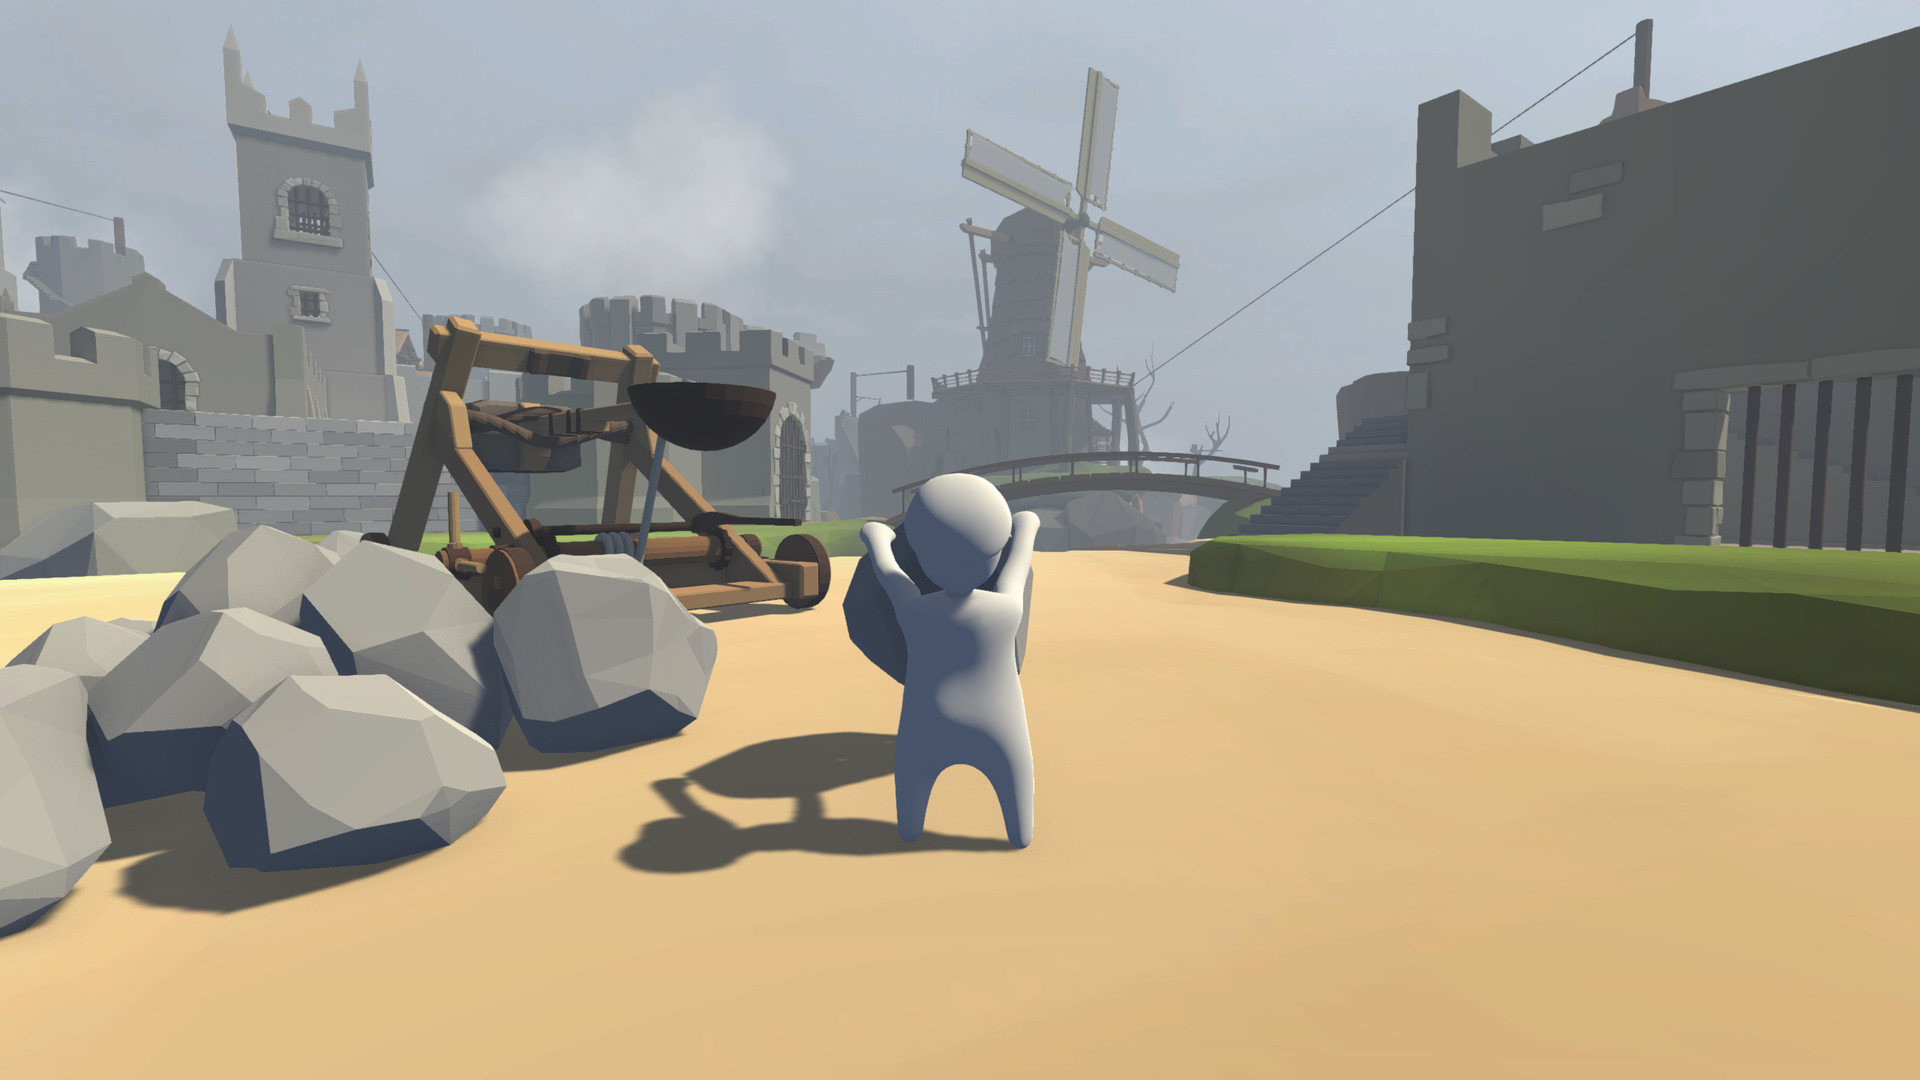 download human fall flat holiday cracked by plaza platformer puzzle games include all dlc and latest update mirrorace multiup